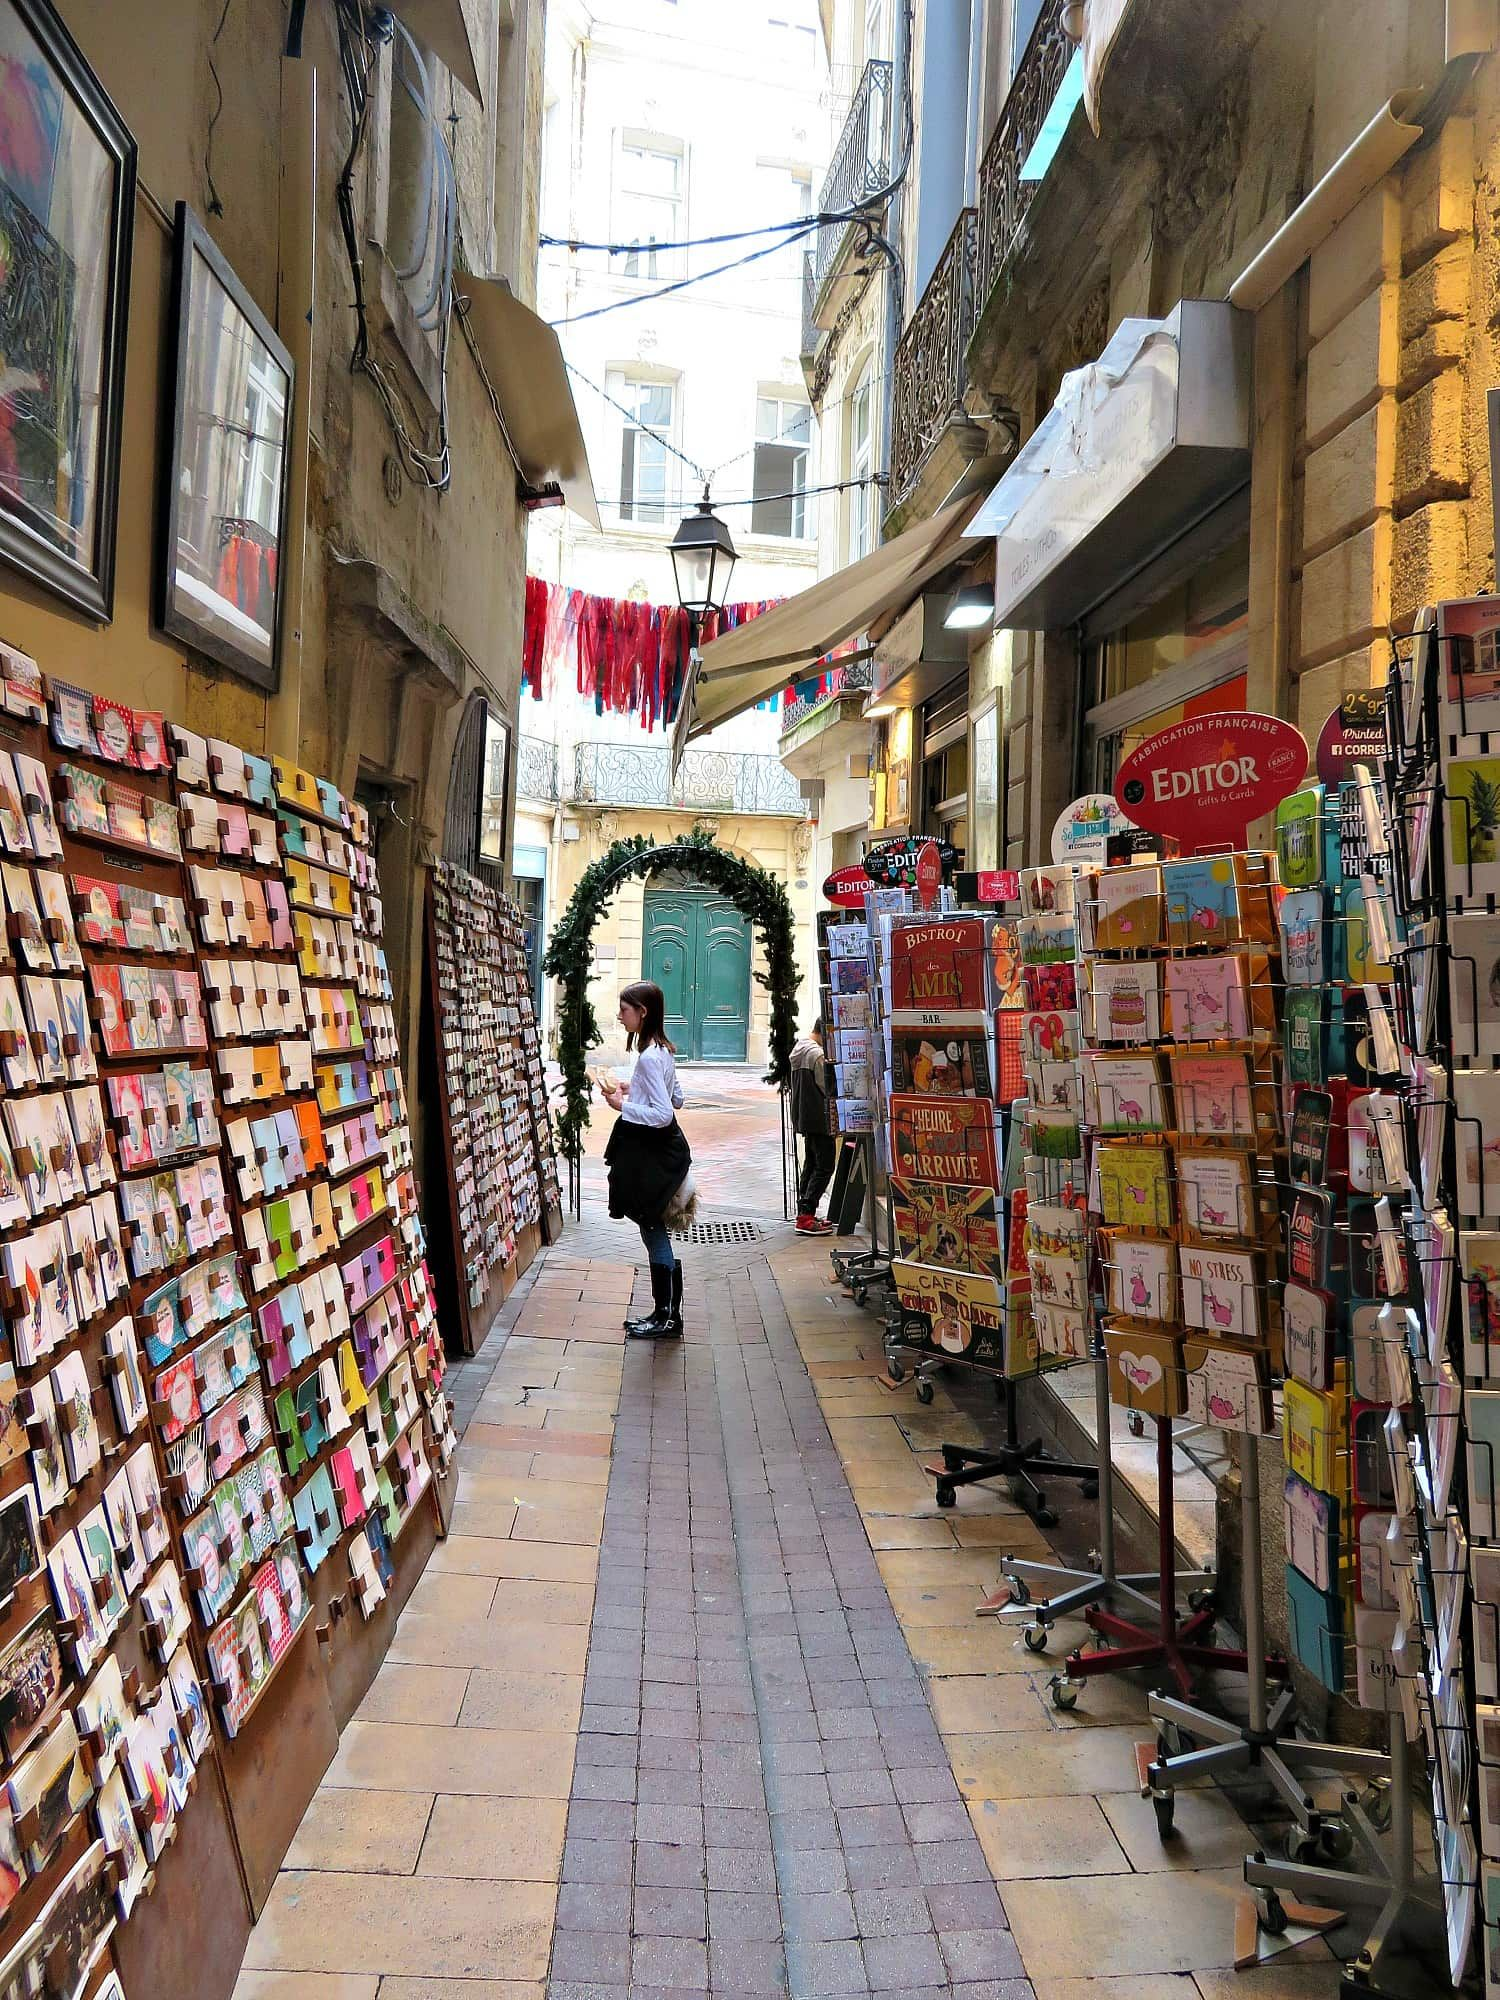 12 Things To Do In Montpellier With Kids France S Most Youthful City Montpellier France Travel Paris Travel